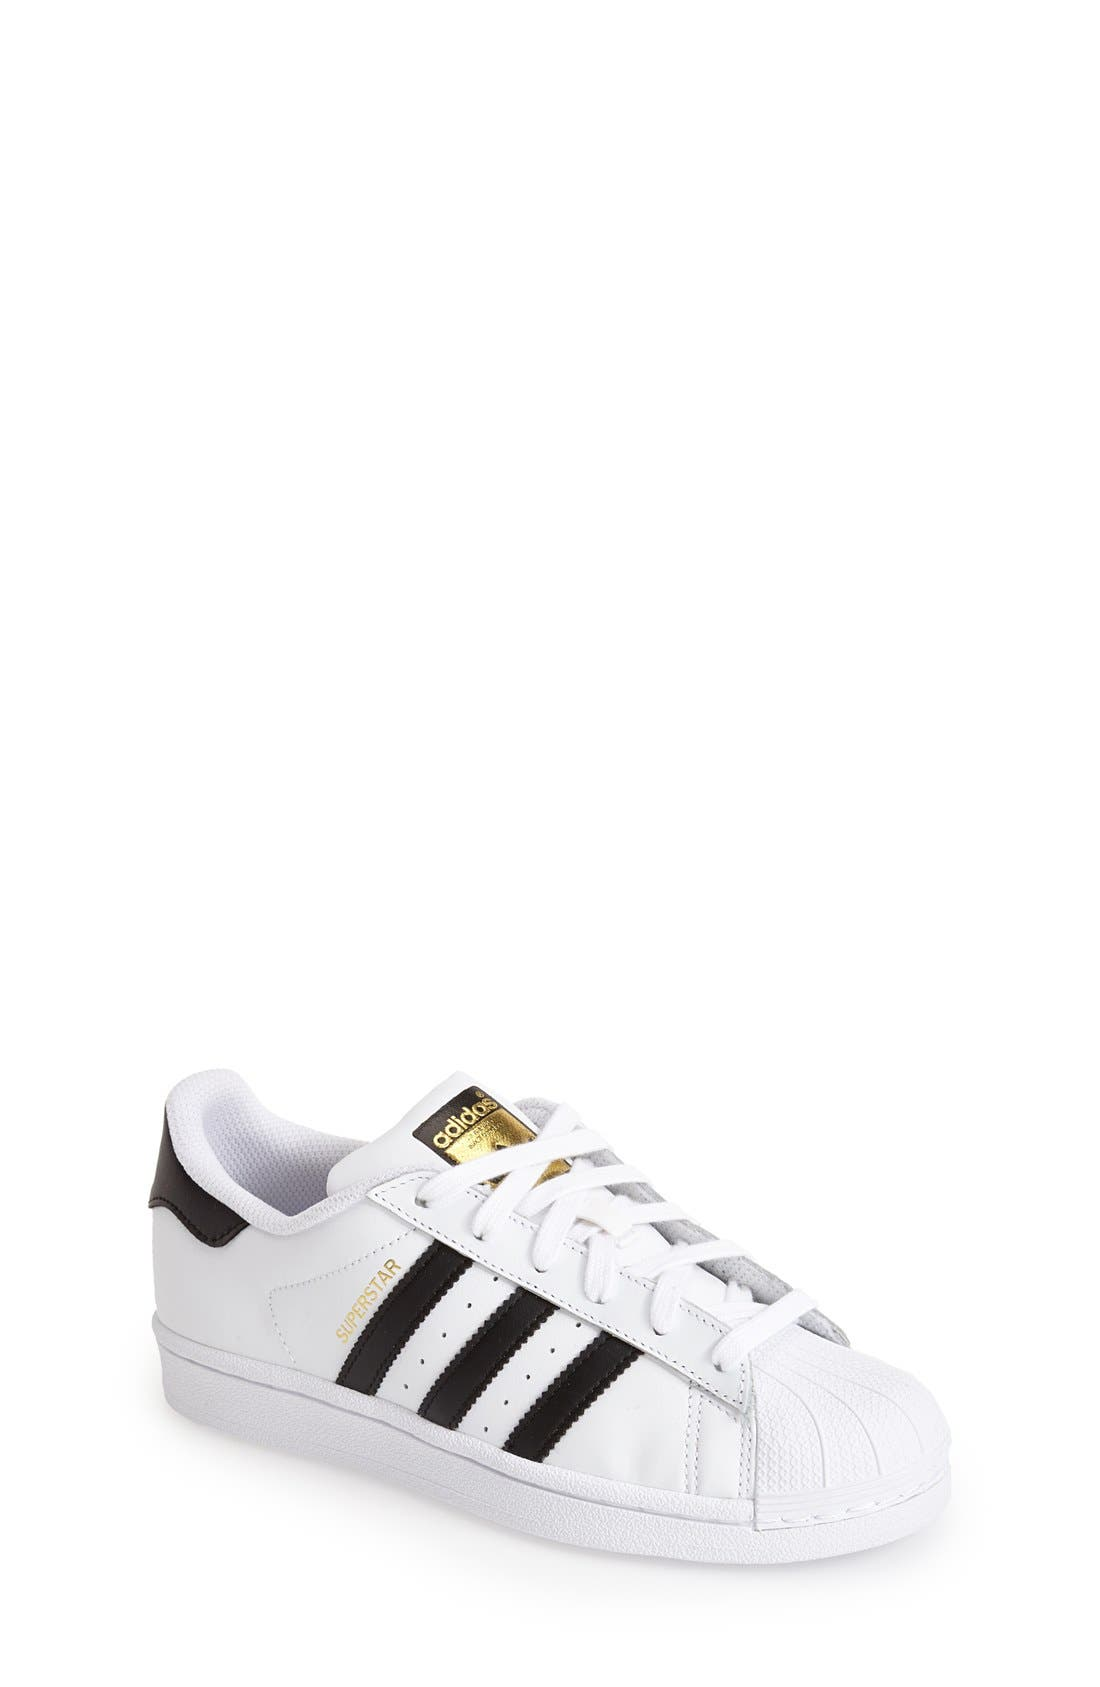 Alternate Image 1 Selected - adidas 'Superstar II' Sneaker (Big Kid)